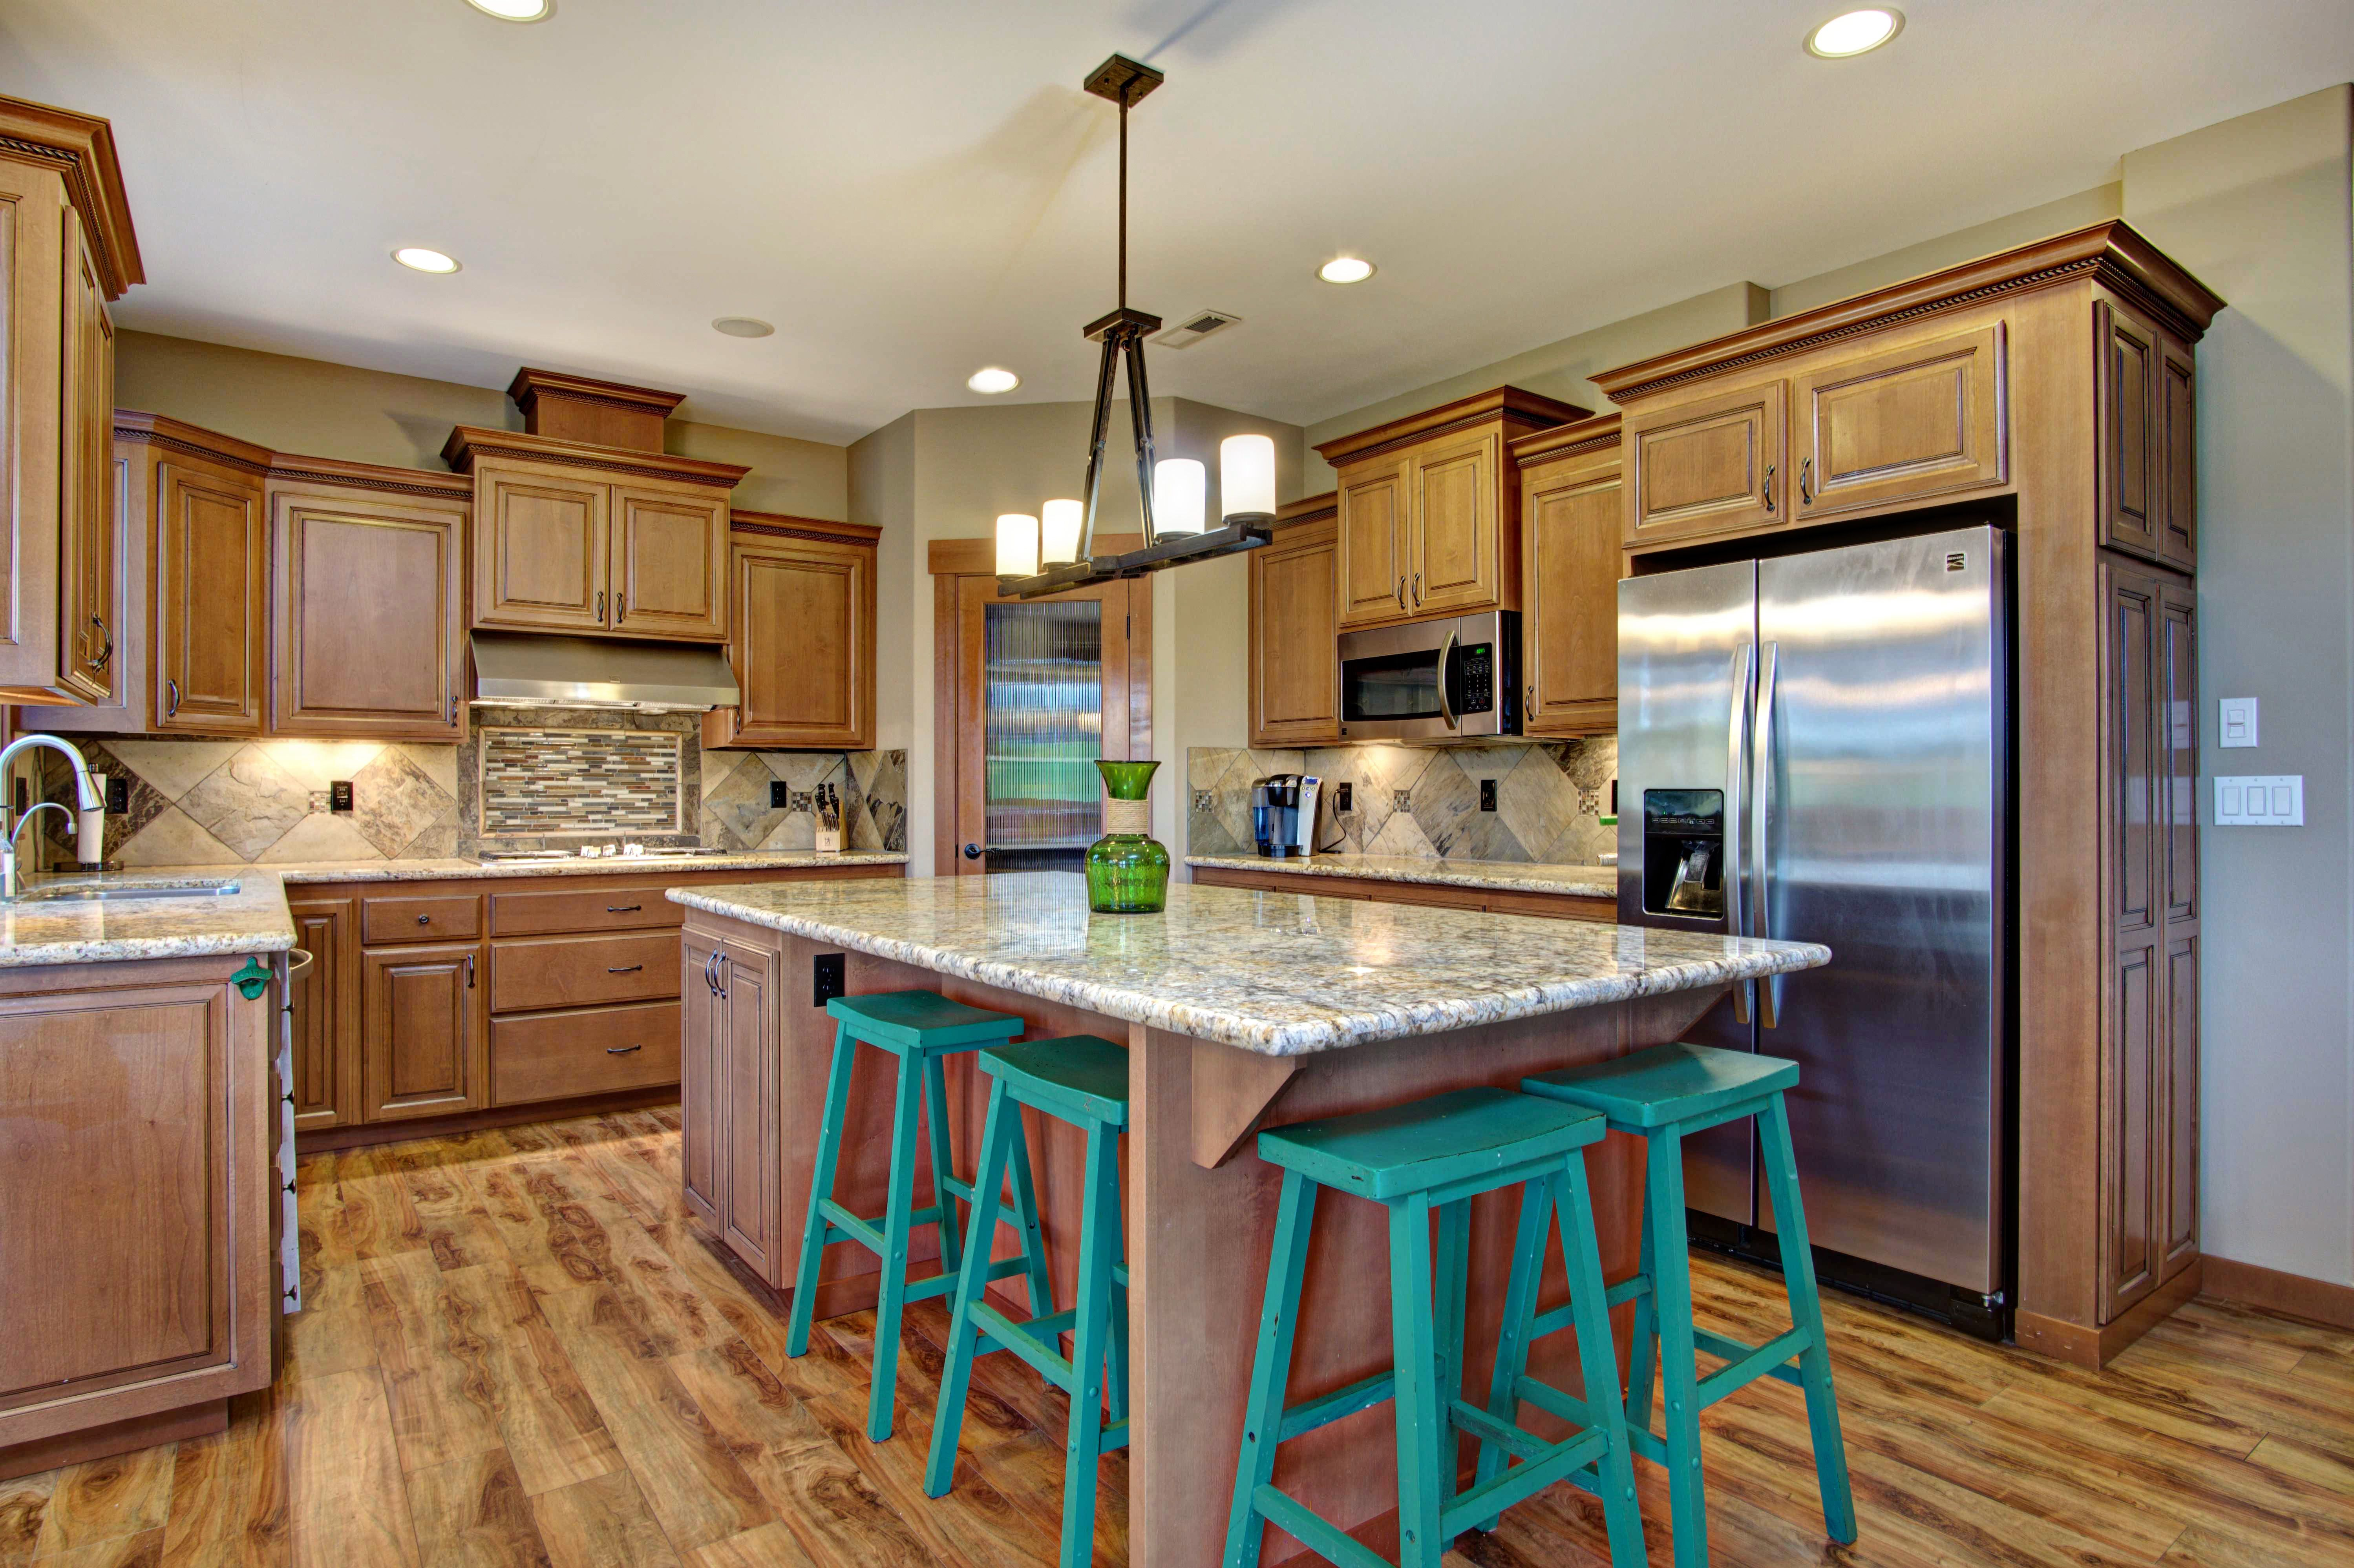 Staggered Cabinet Uppers Give This Kitchen Dimension And Style Large Island With Seating Slab Granite Staggered Cabinets Island With Seating Grey Backsplash